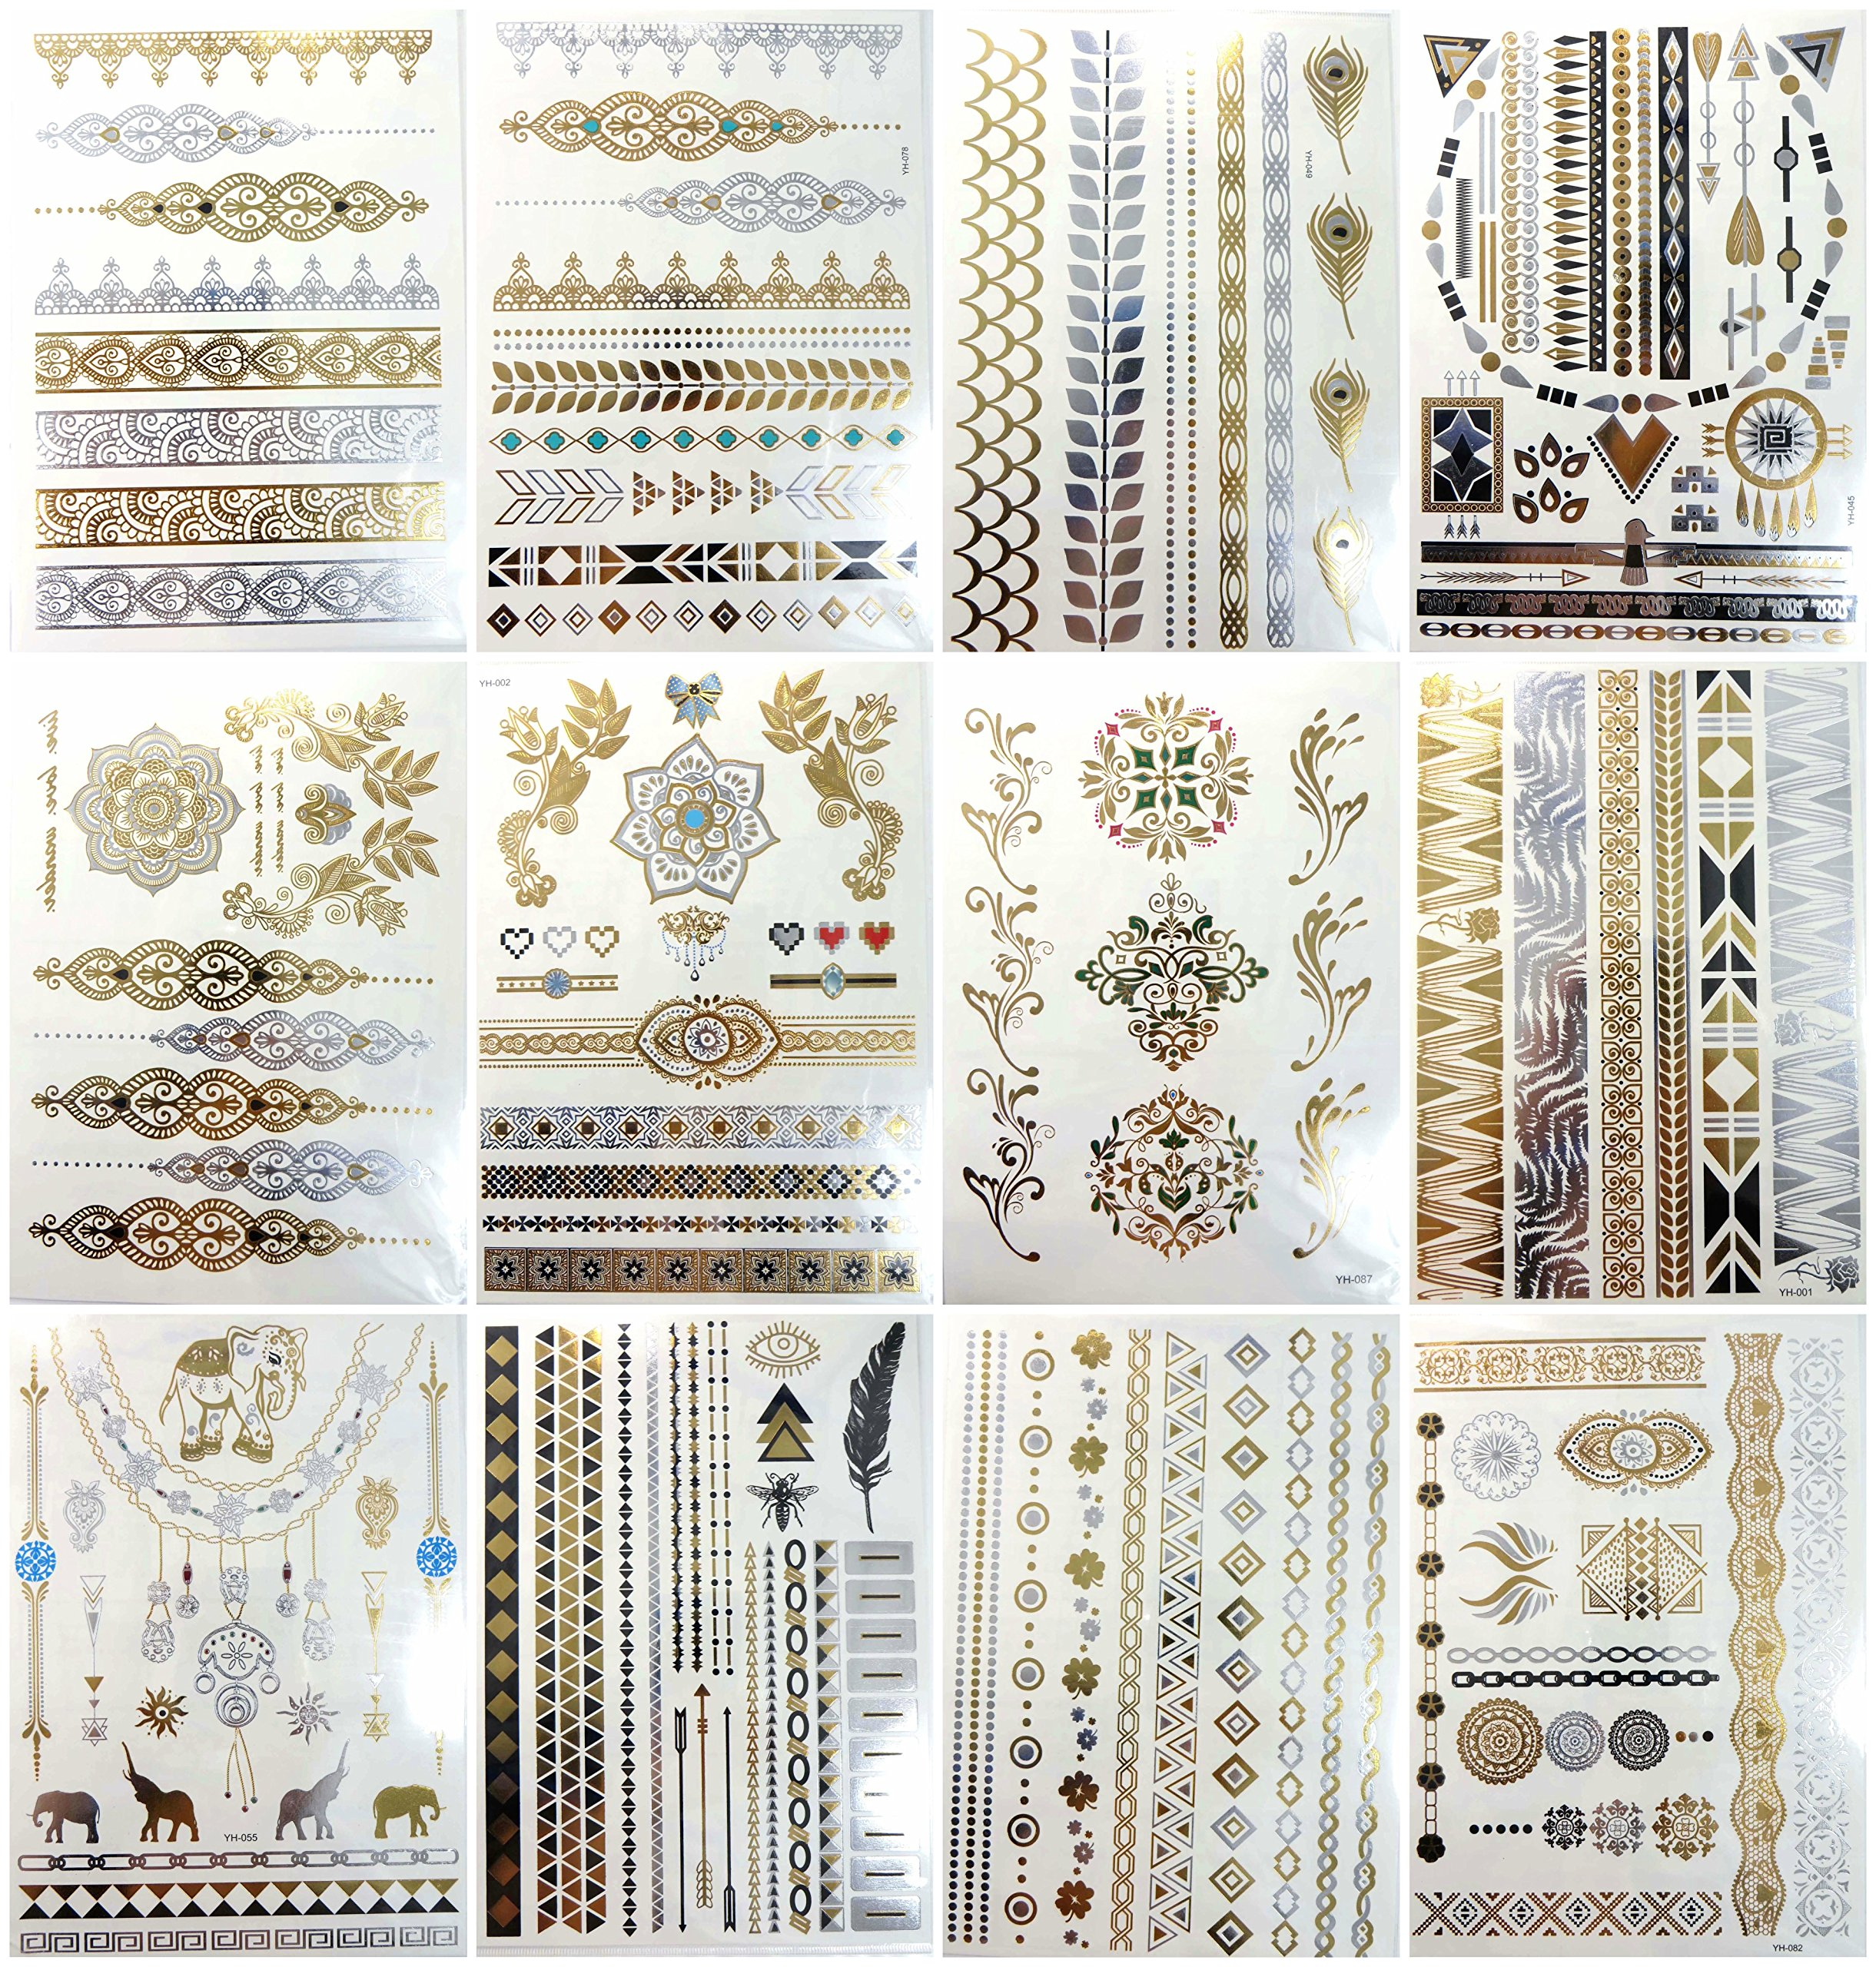 12 sheets gold silver metallic temporary tattoo jewelry-inspired sexy